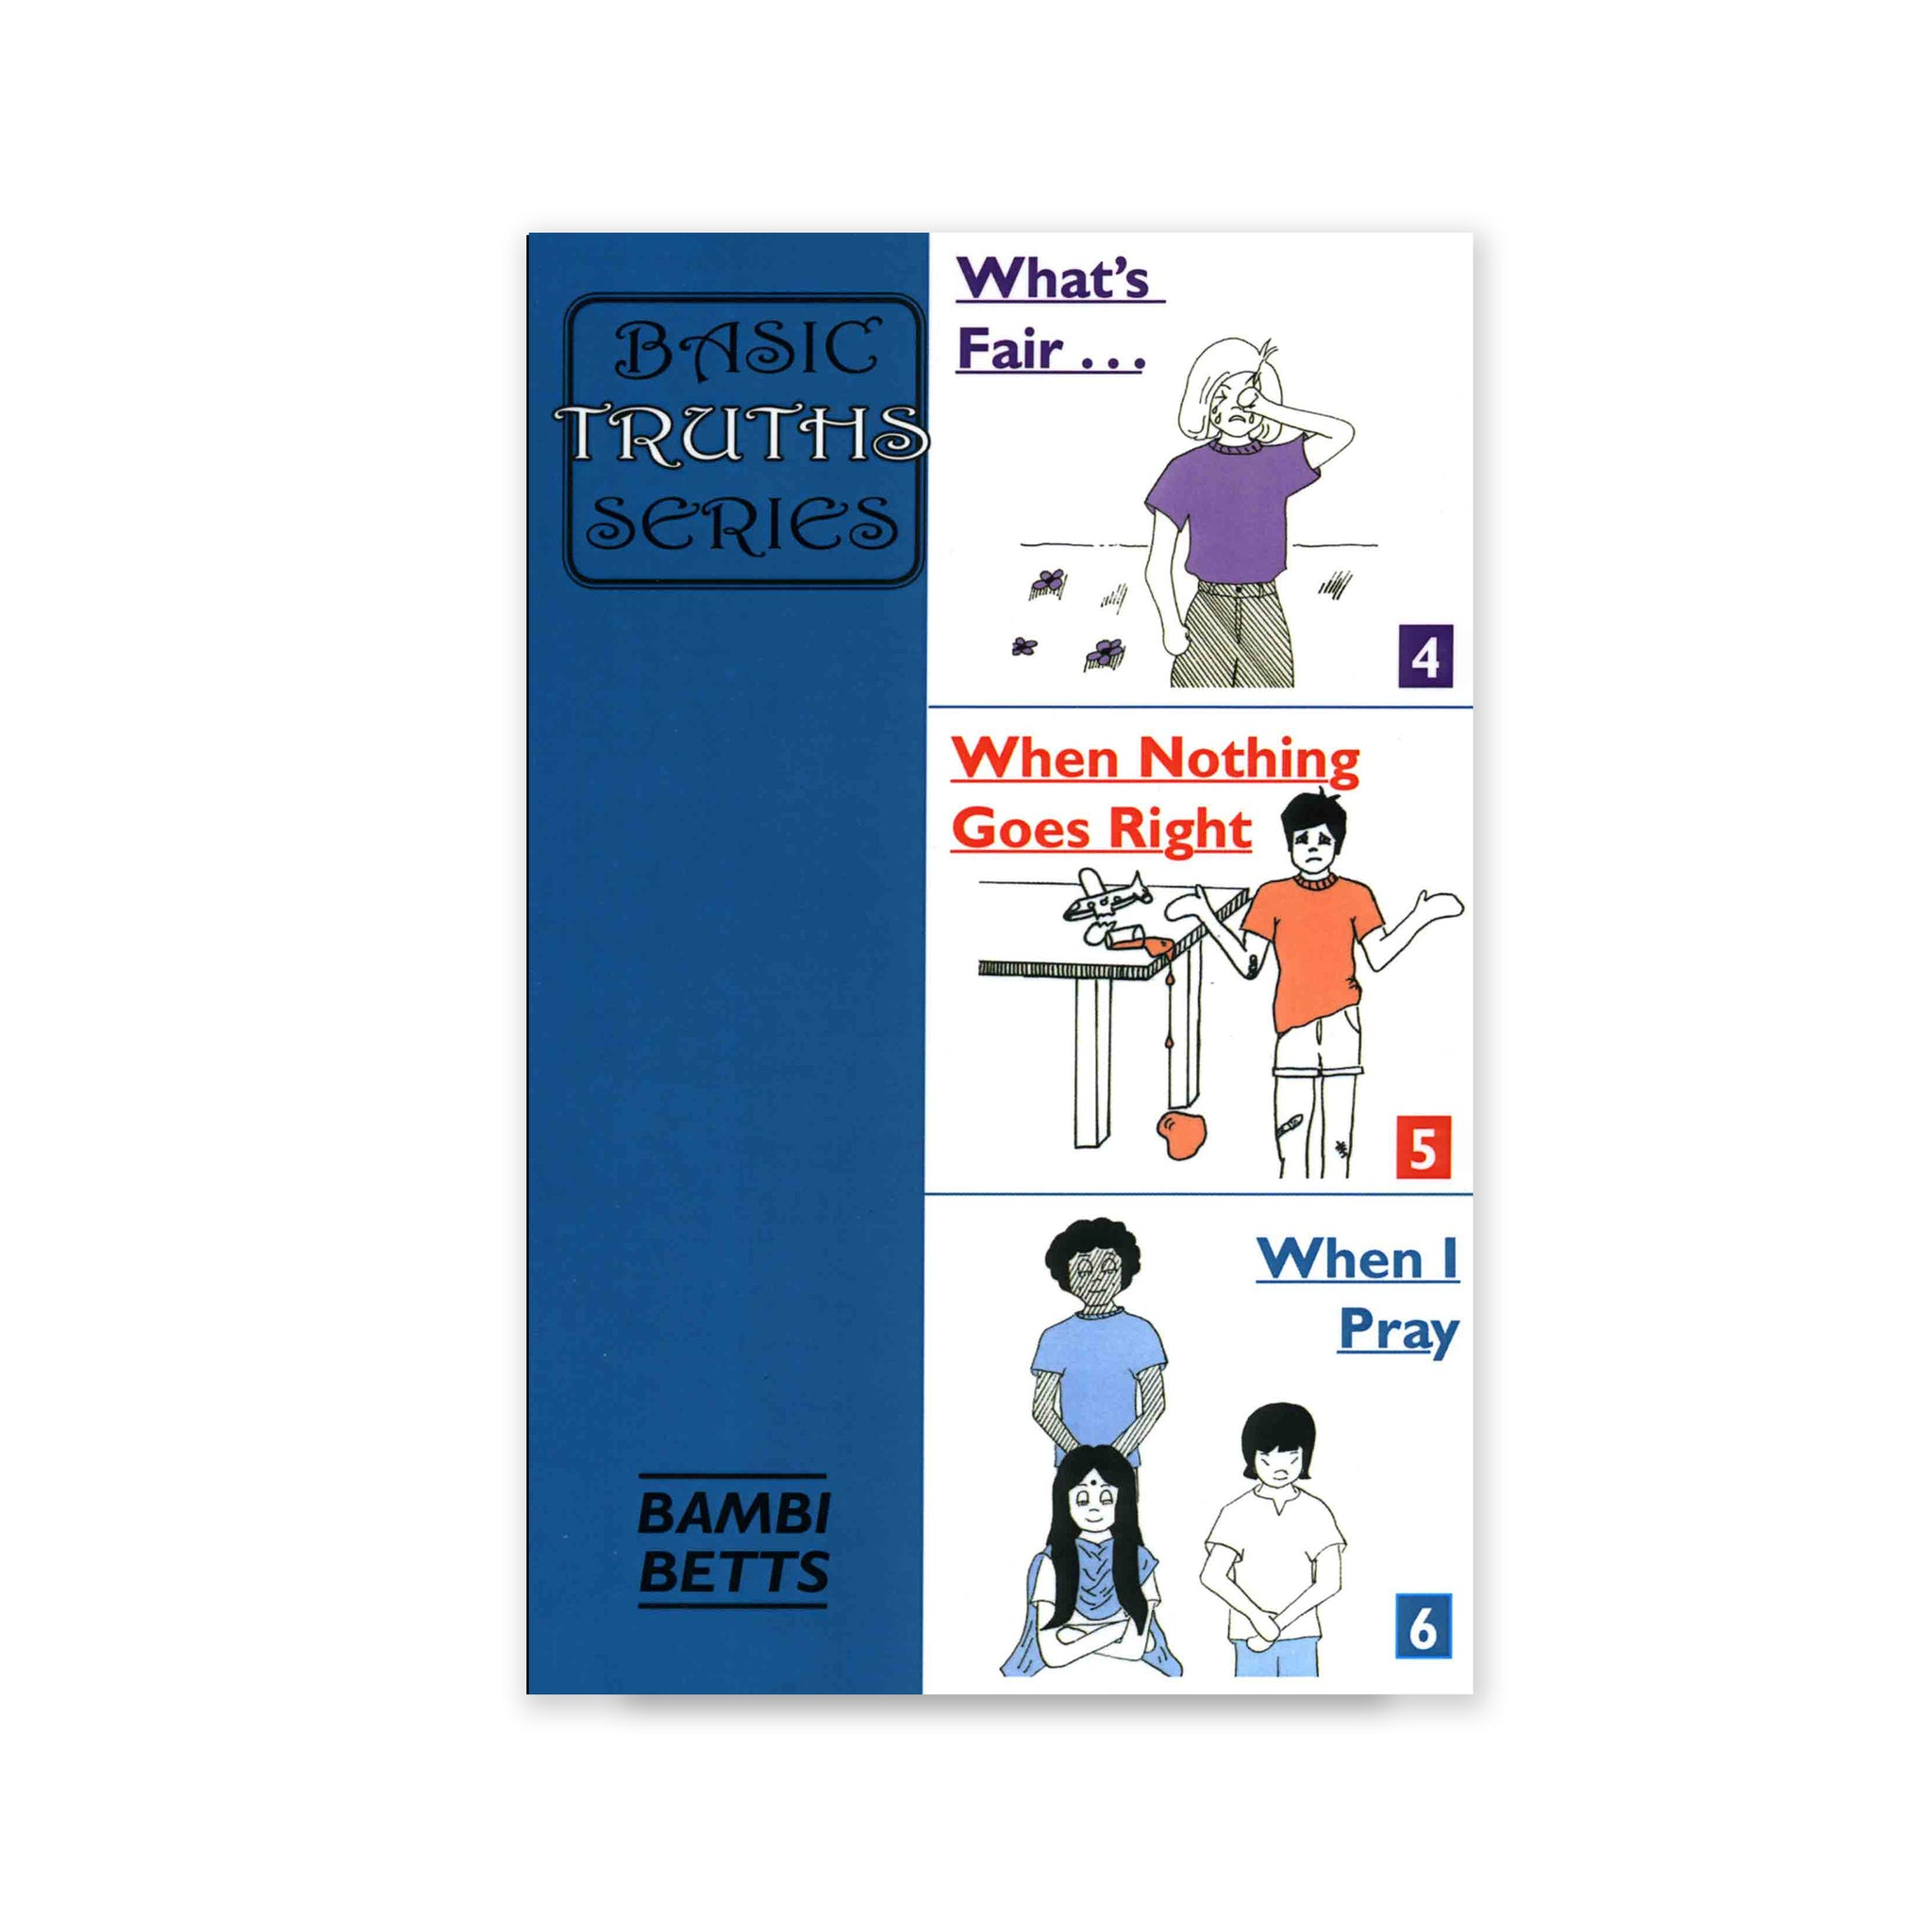 Basic Truths Series 2 - Simple Book for Young Children